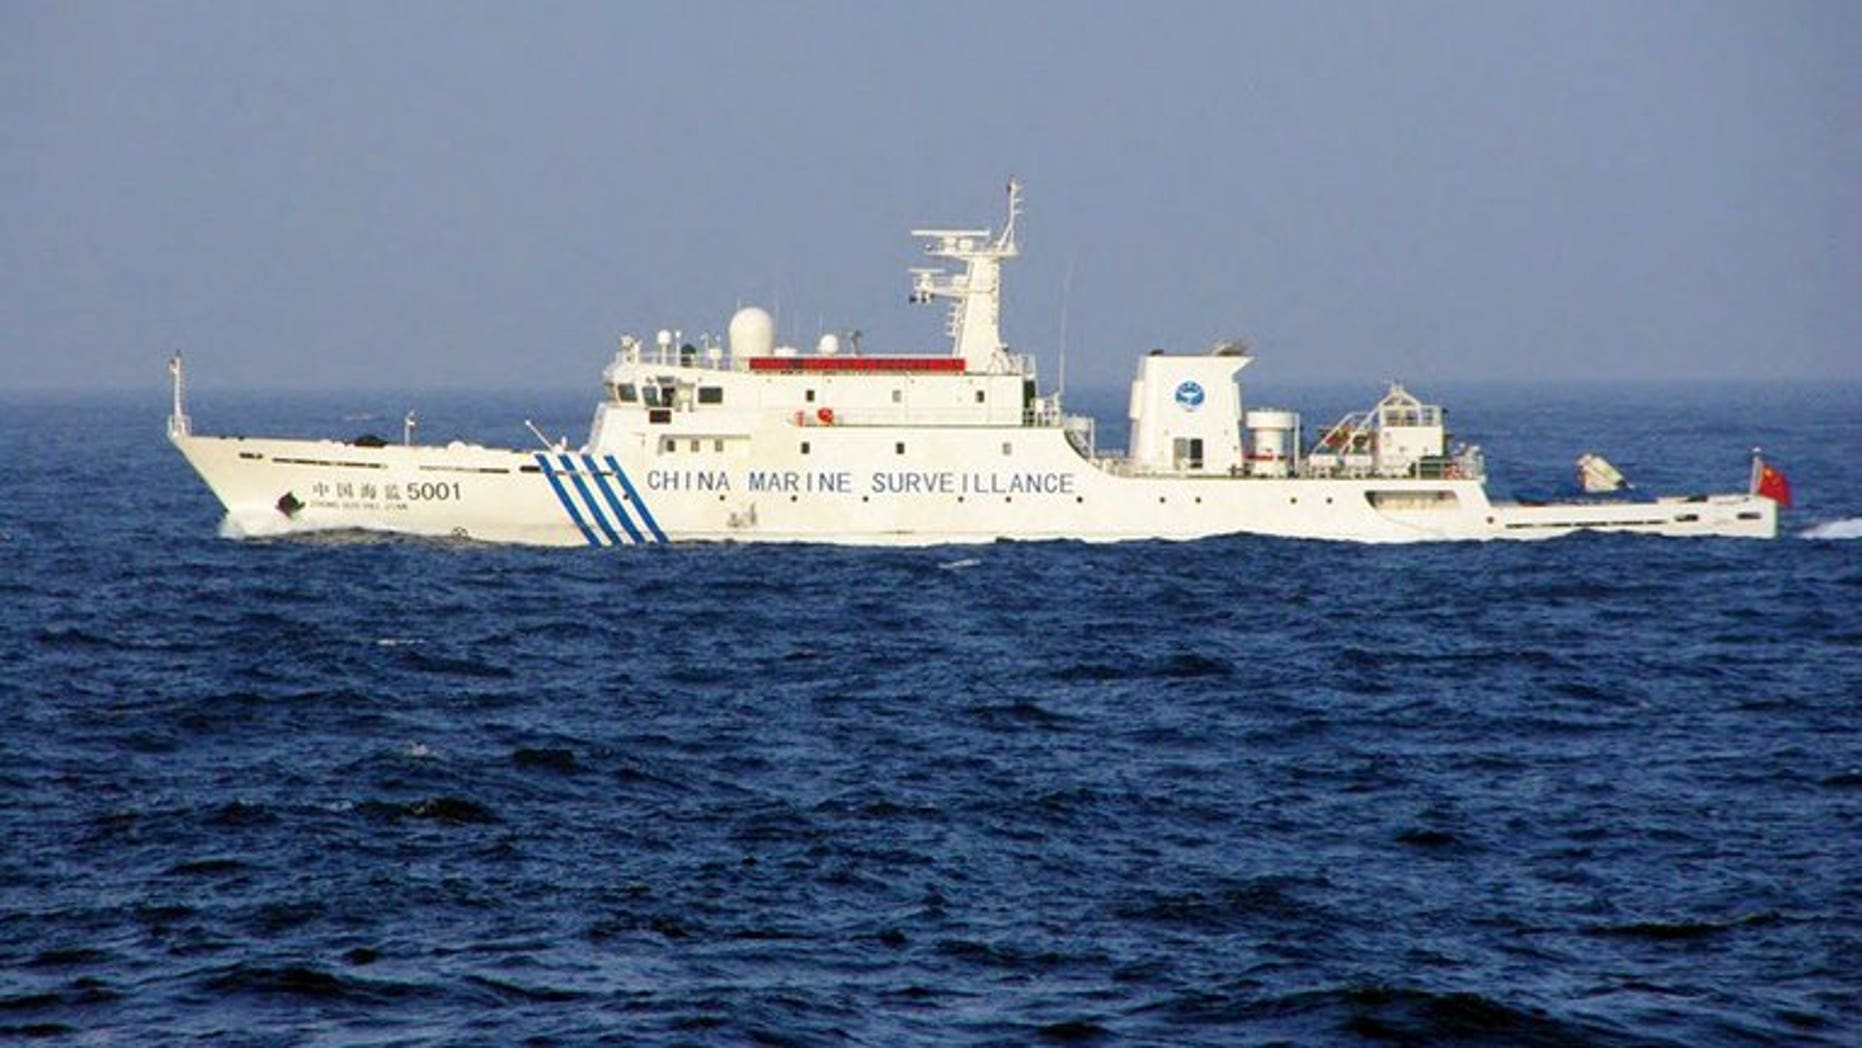 This handout picture taken by the Japan Coast Guard on June 27, 2013 shows a Chinese marine surveillance ship cruising near the disputed islets in the East China Sea. Three Chinese government ships sailed into waters around islands at the centre of a territorial dispute on Thursday, the day after Japan's premier visited coastguards who patrol the area.